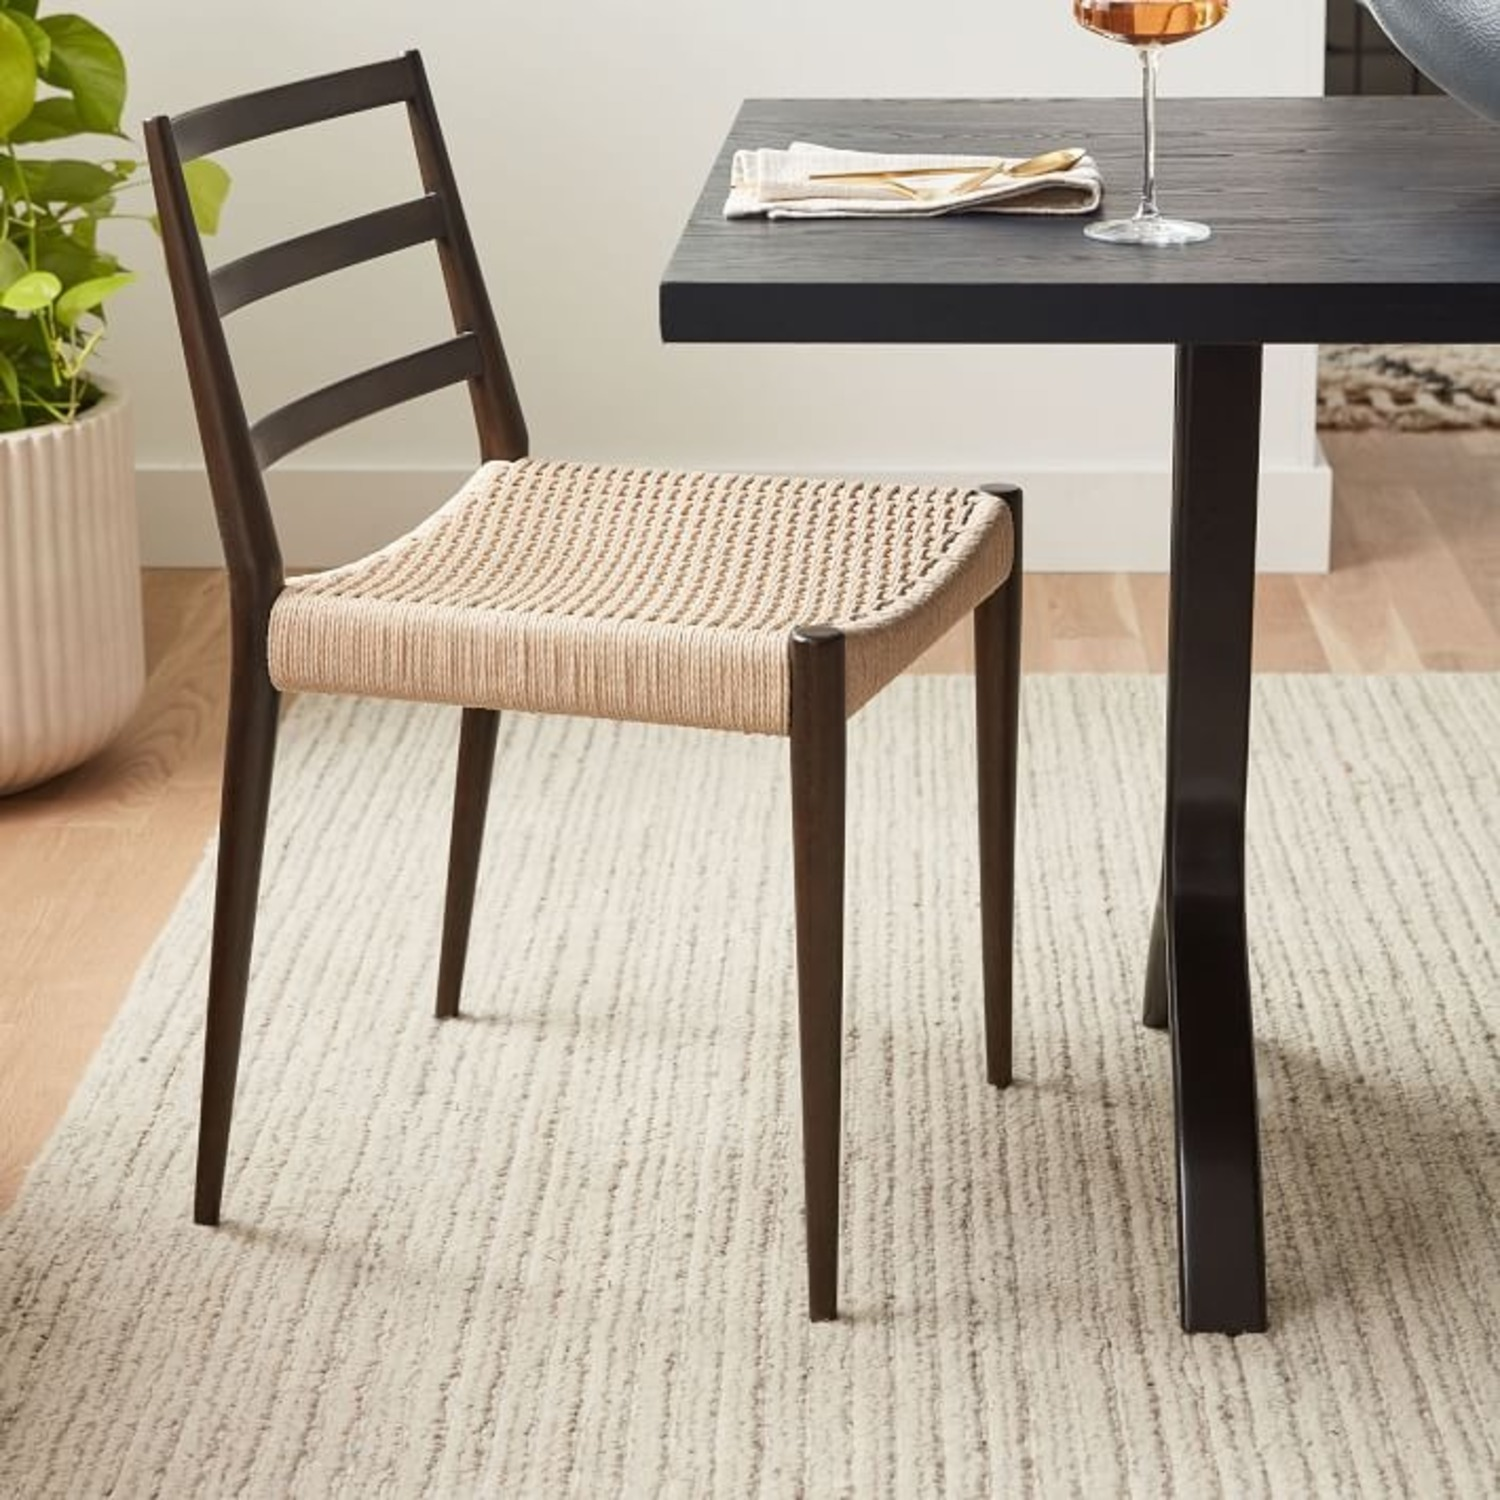 West Elm Holland Woven Dining Chair (Set of 2) - image-4